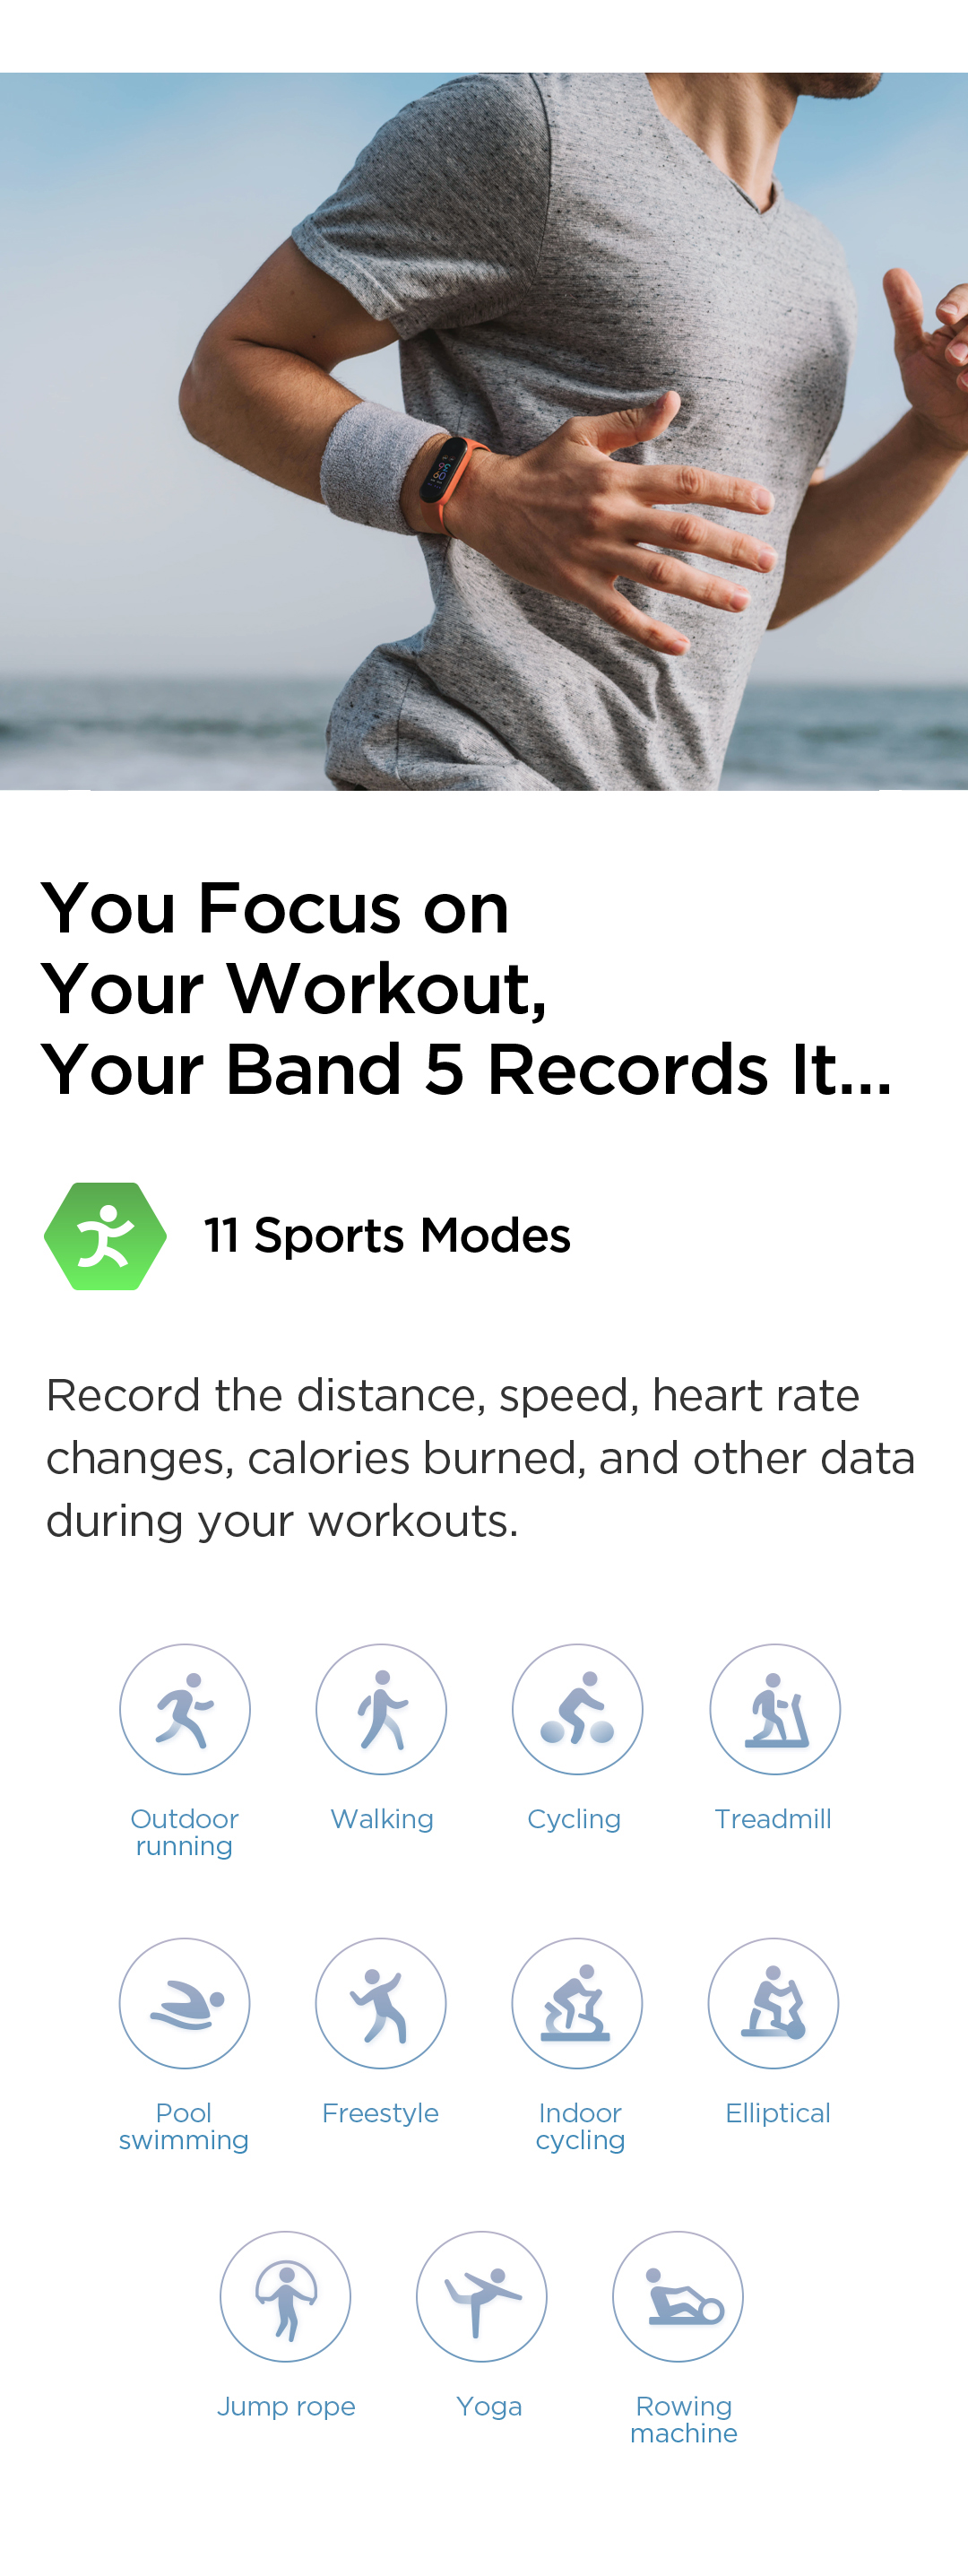 Amazfit Band 5 with 11 sports mode